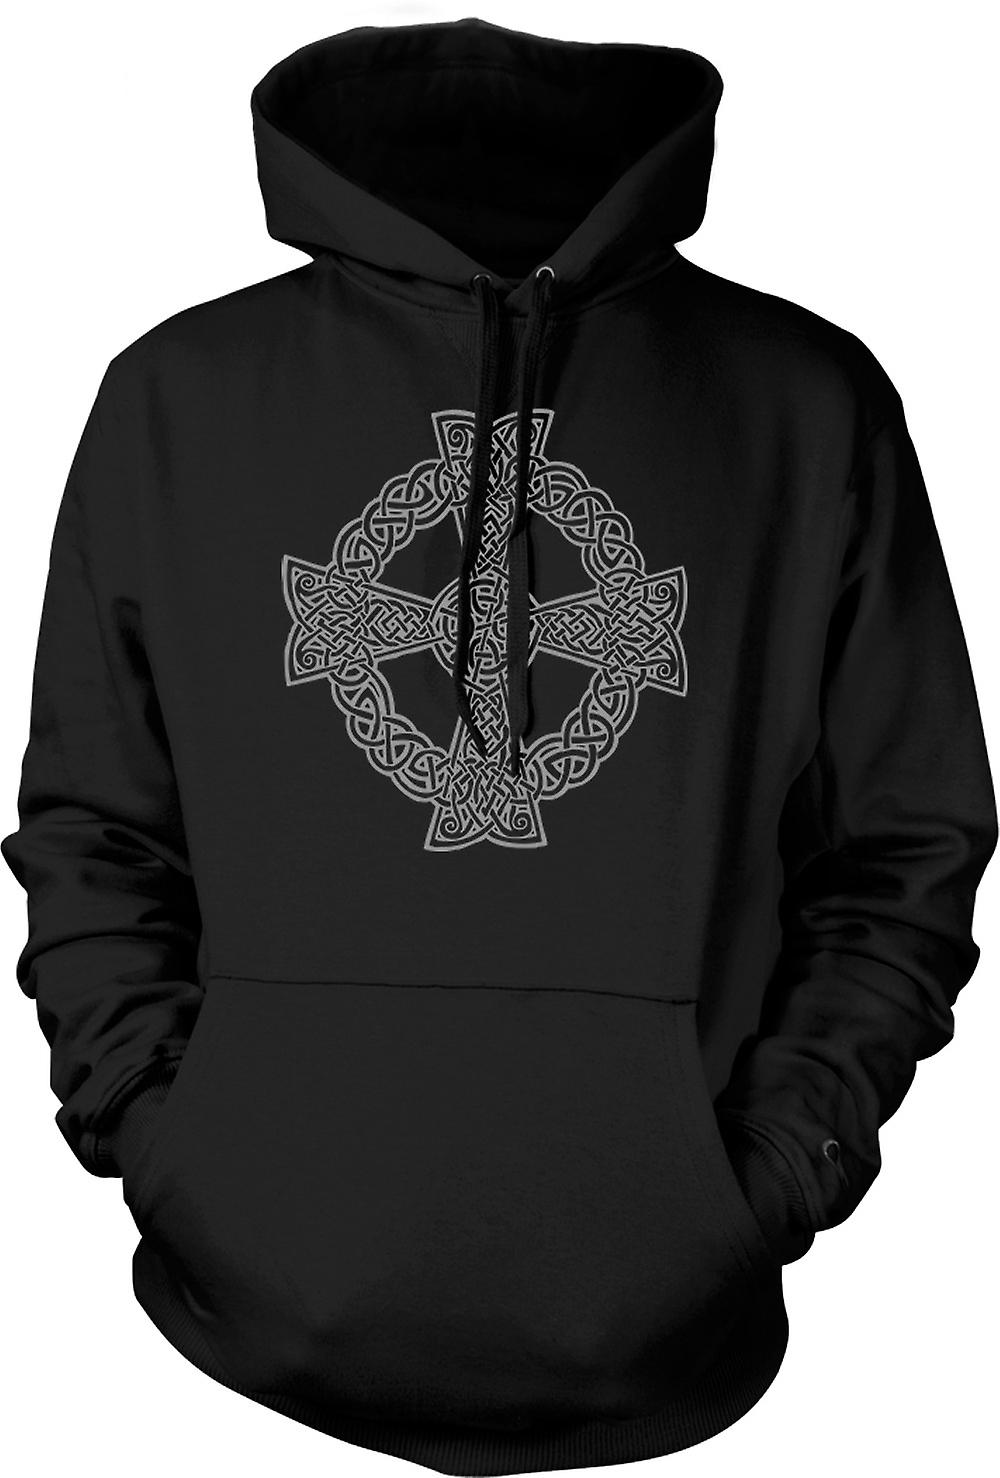 Kids Hoodie - Celtic Cross 1 - Tattoo Design